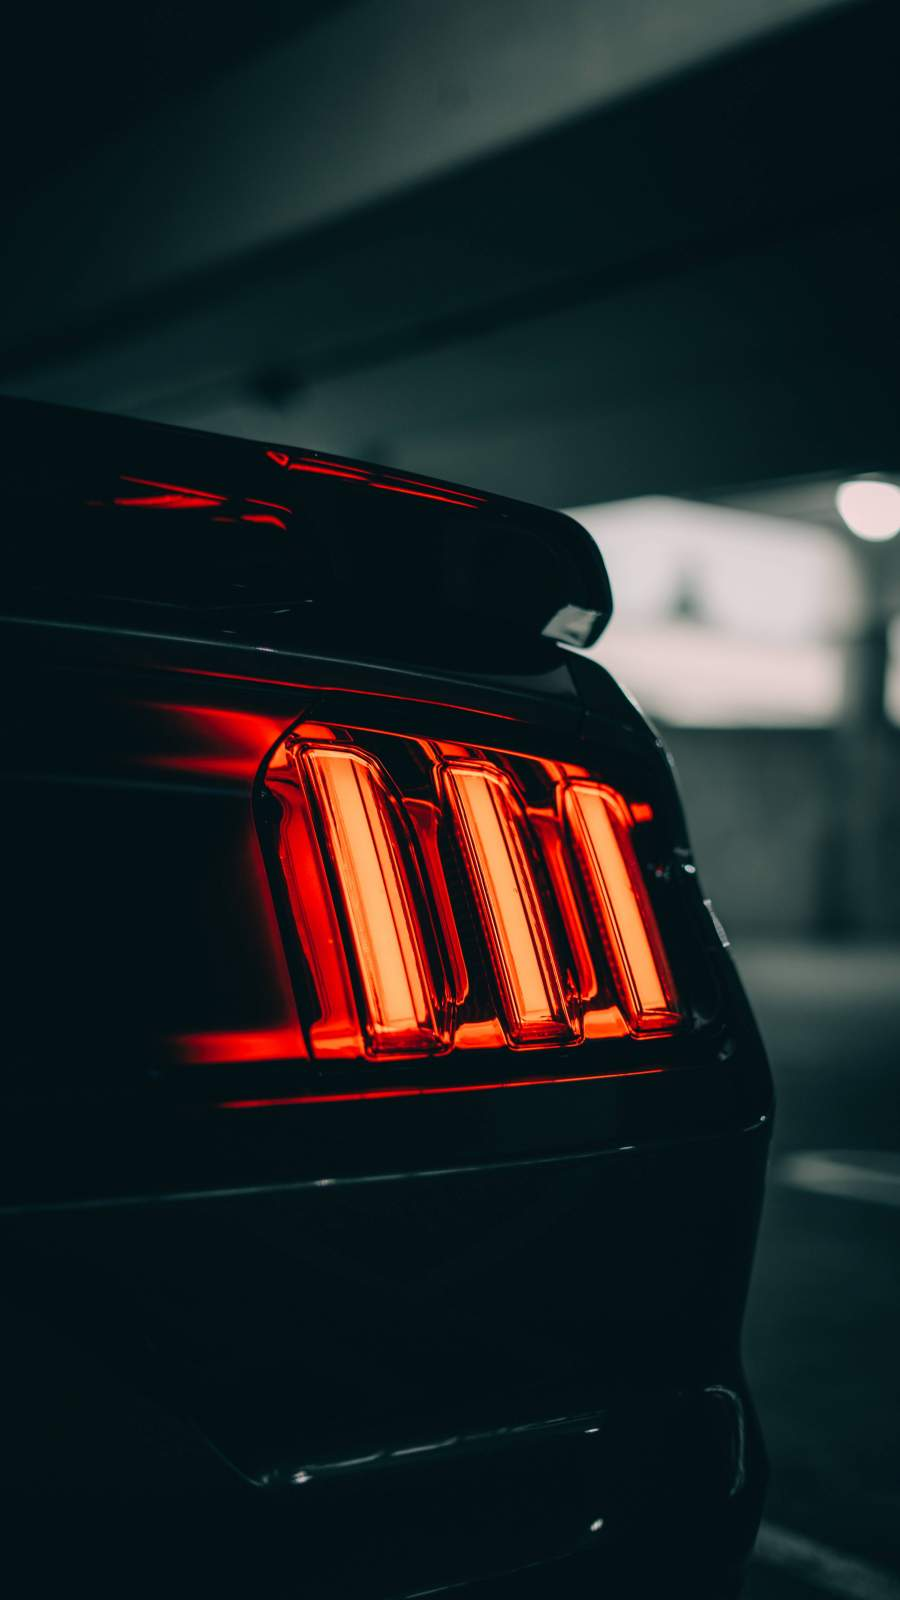 Mustang Lights iPhone Wallpaper